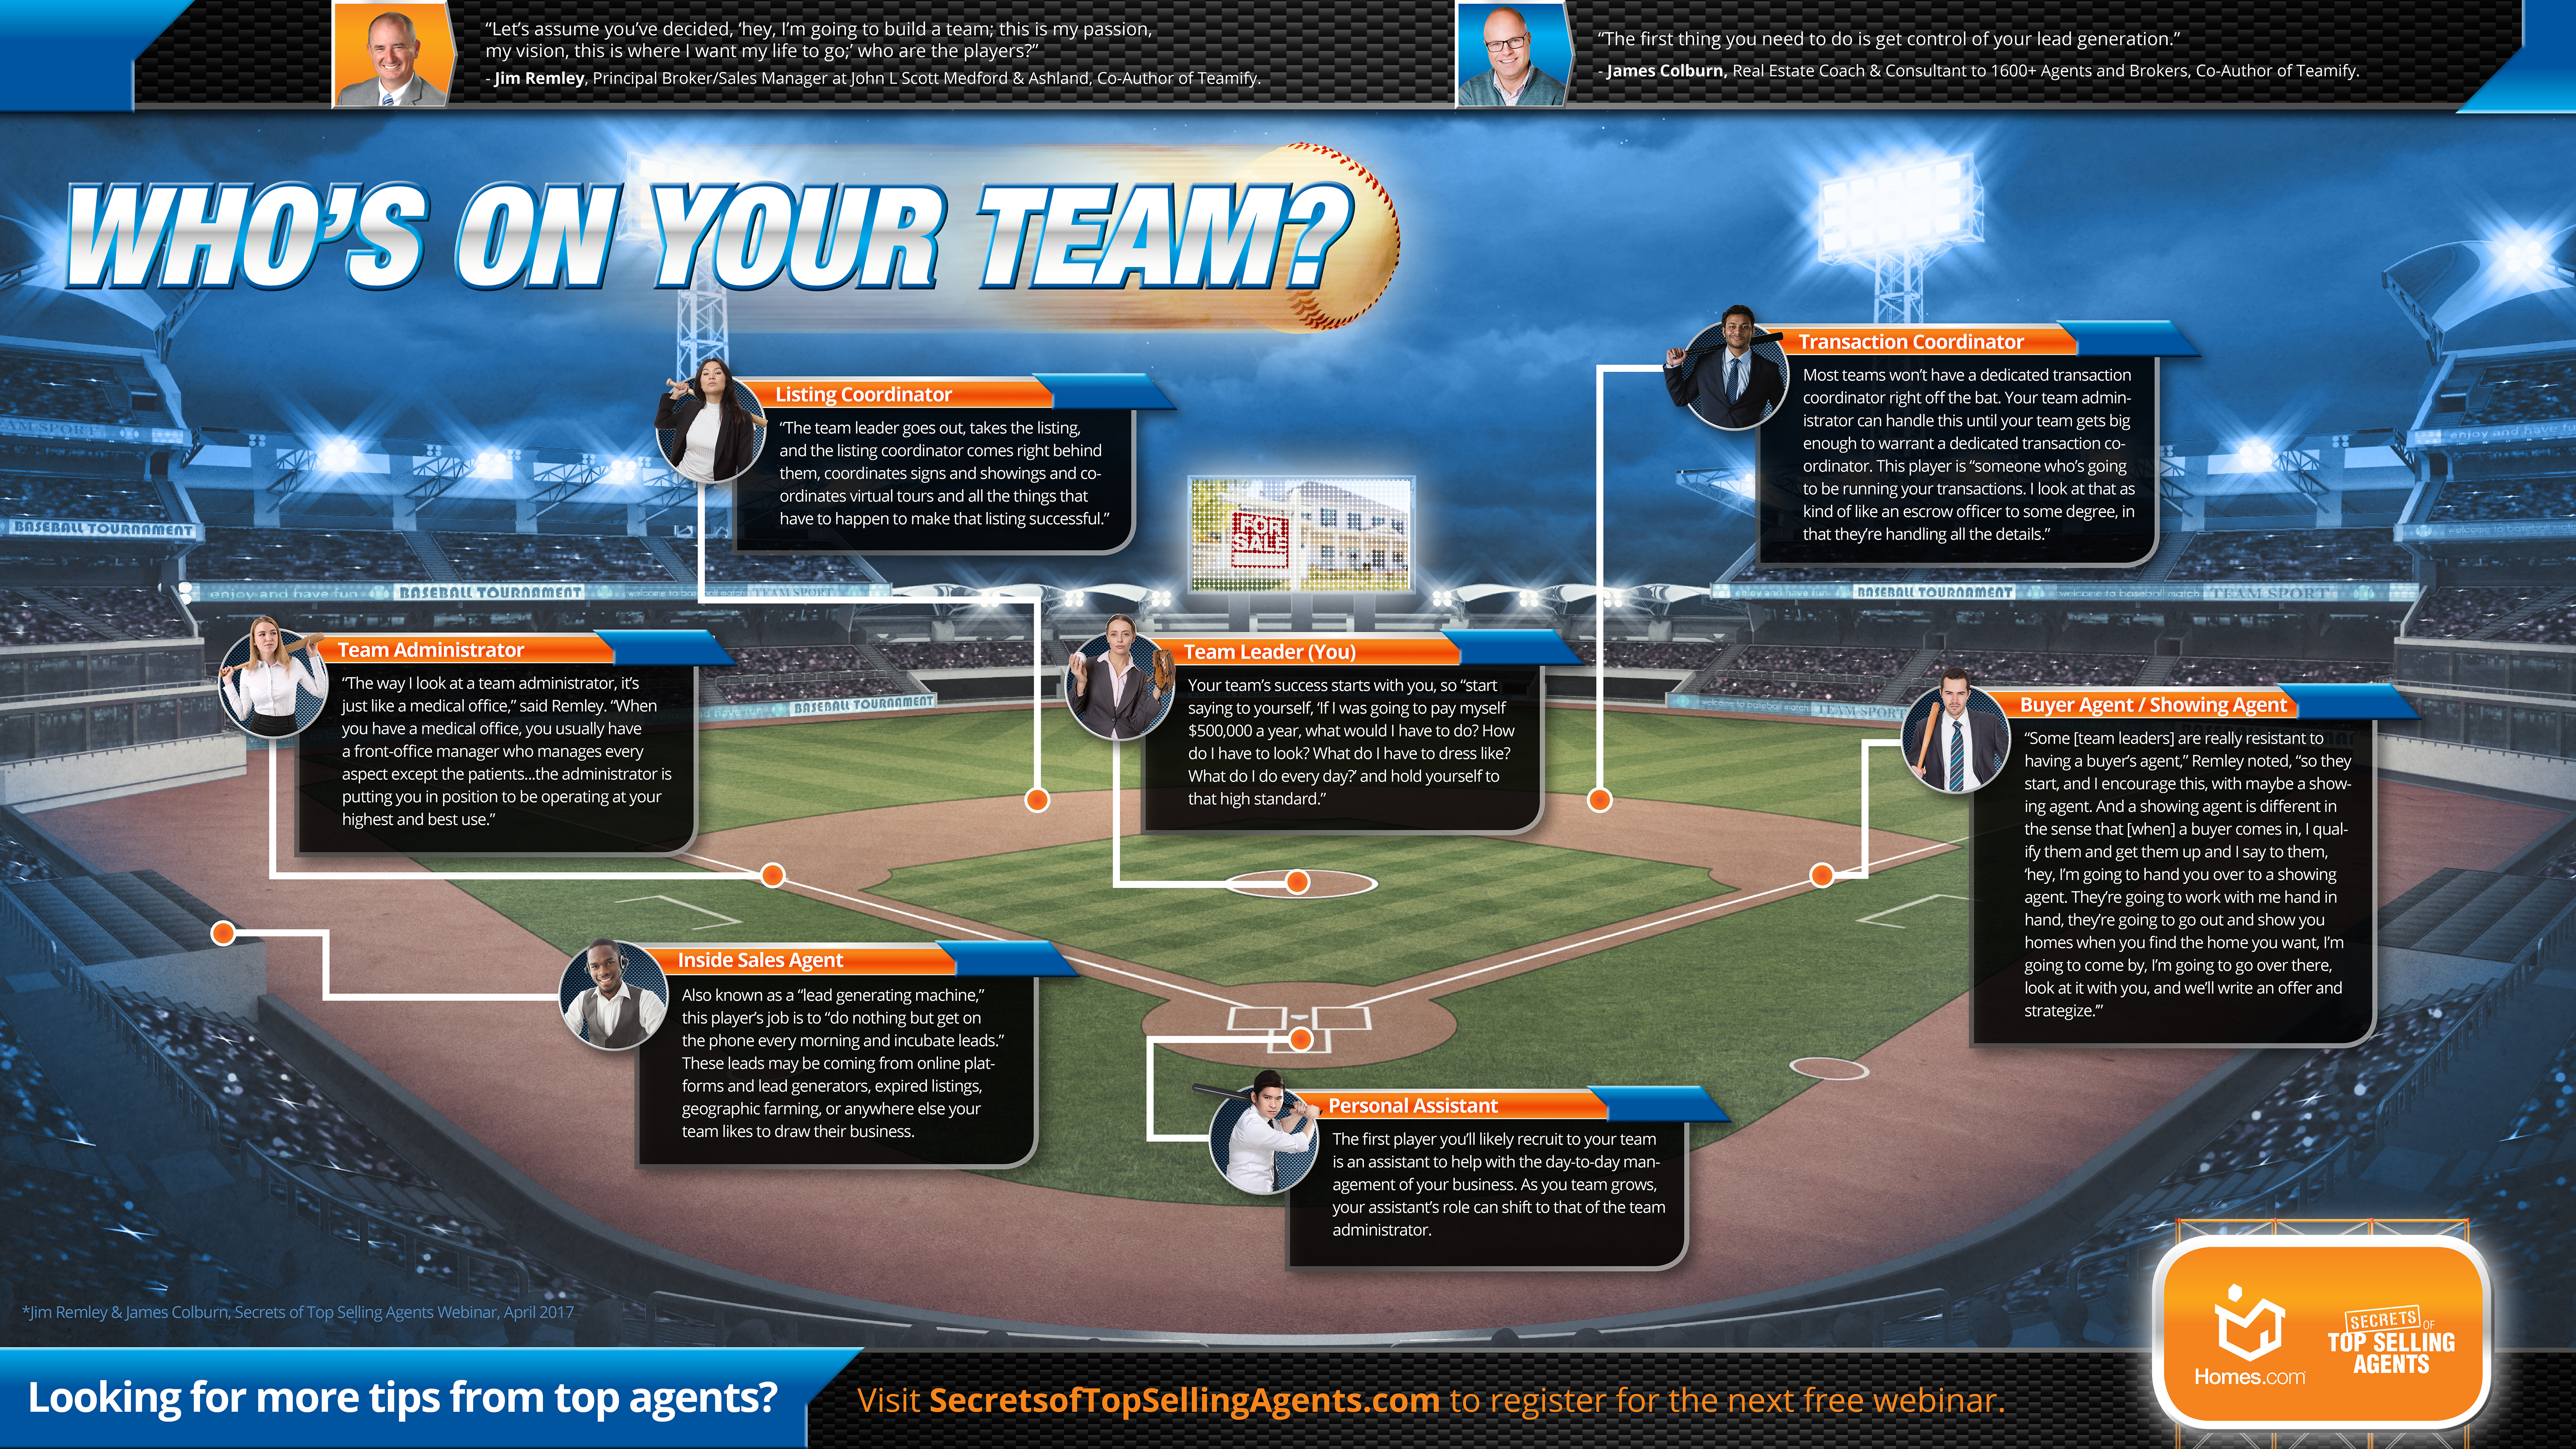 HDC_Remley_Colburn_Infographic